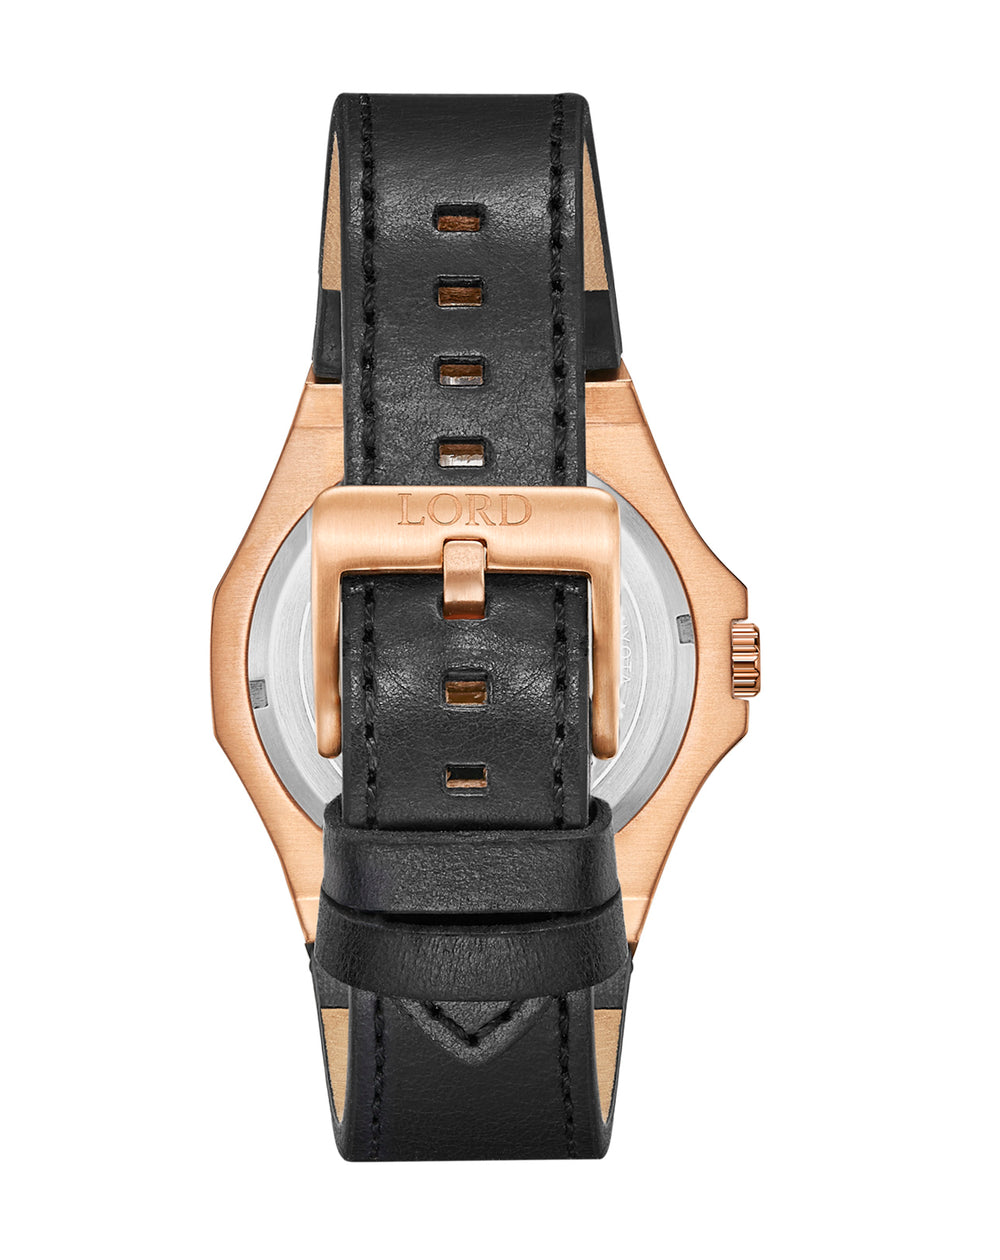 Lord-timepieces-astro-Gunmetal-tan-leather-watch-back